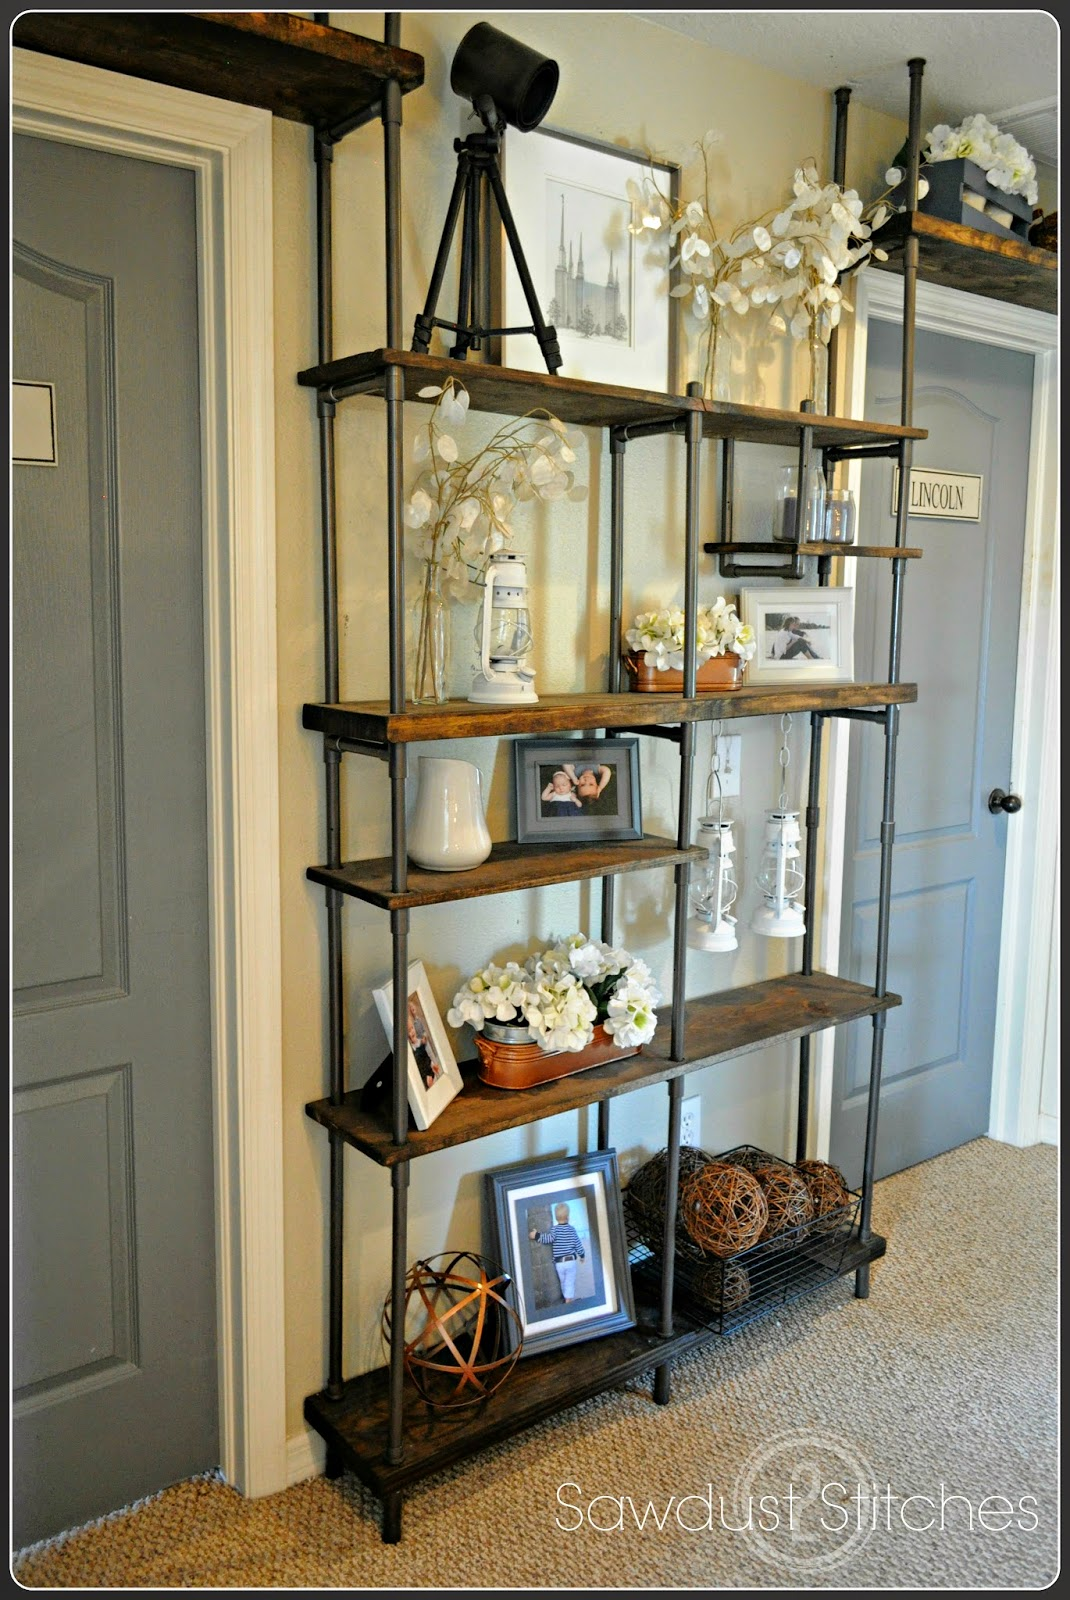 Remodelaholic | Build a Budget-Friendly Industrial Shelf Using PVC Pipe